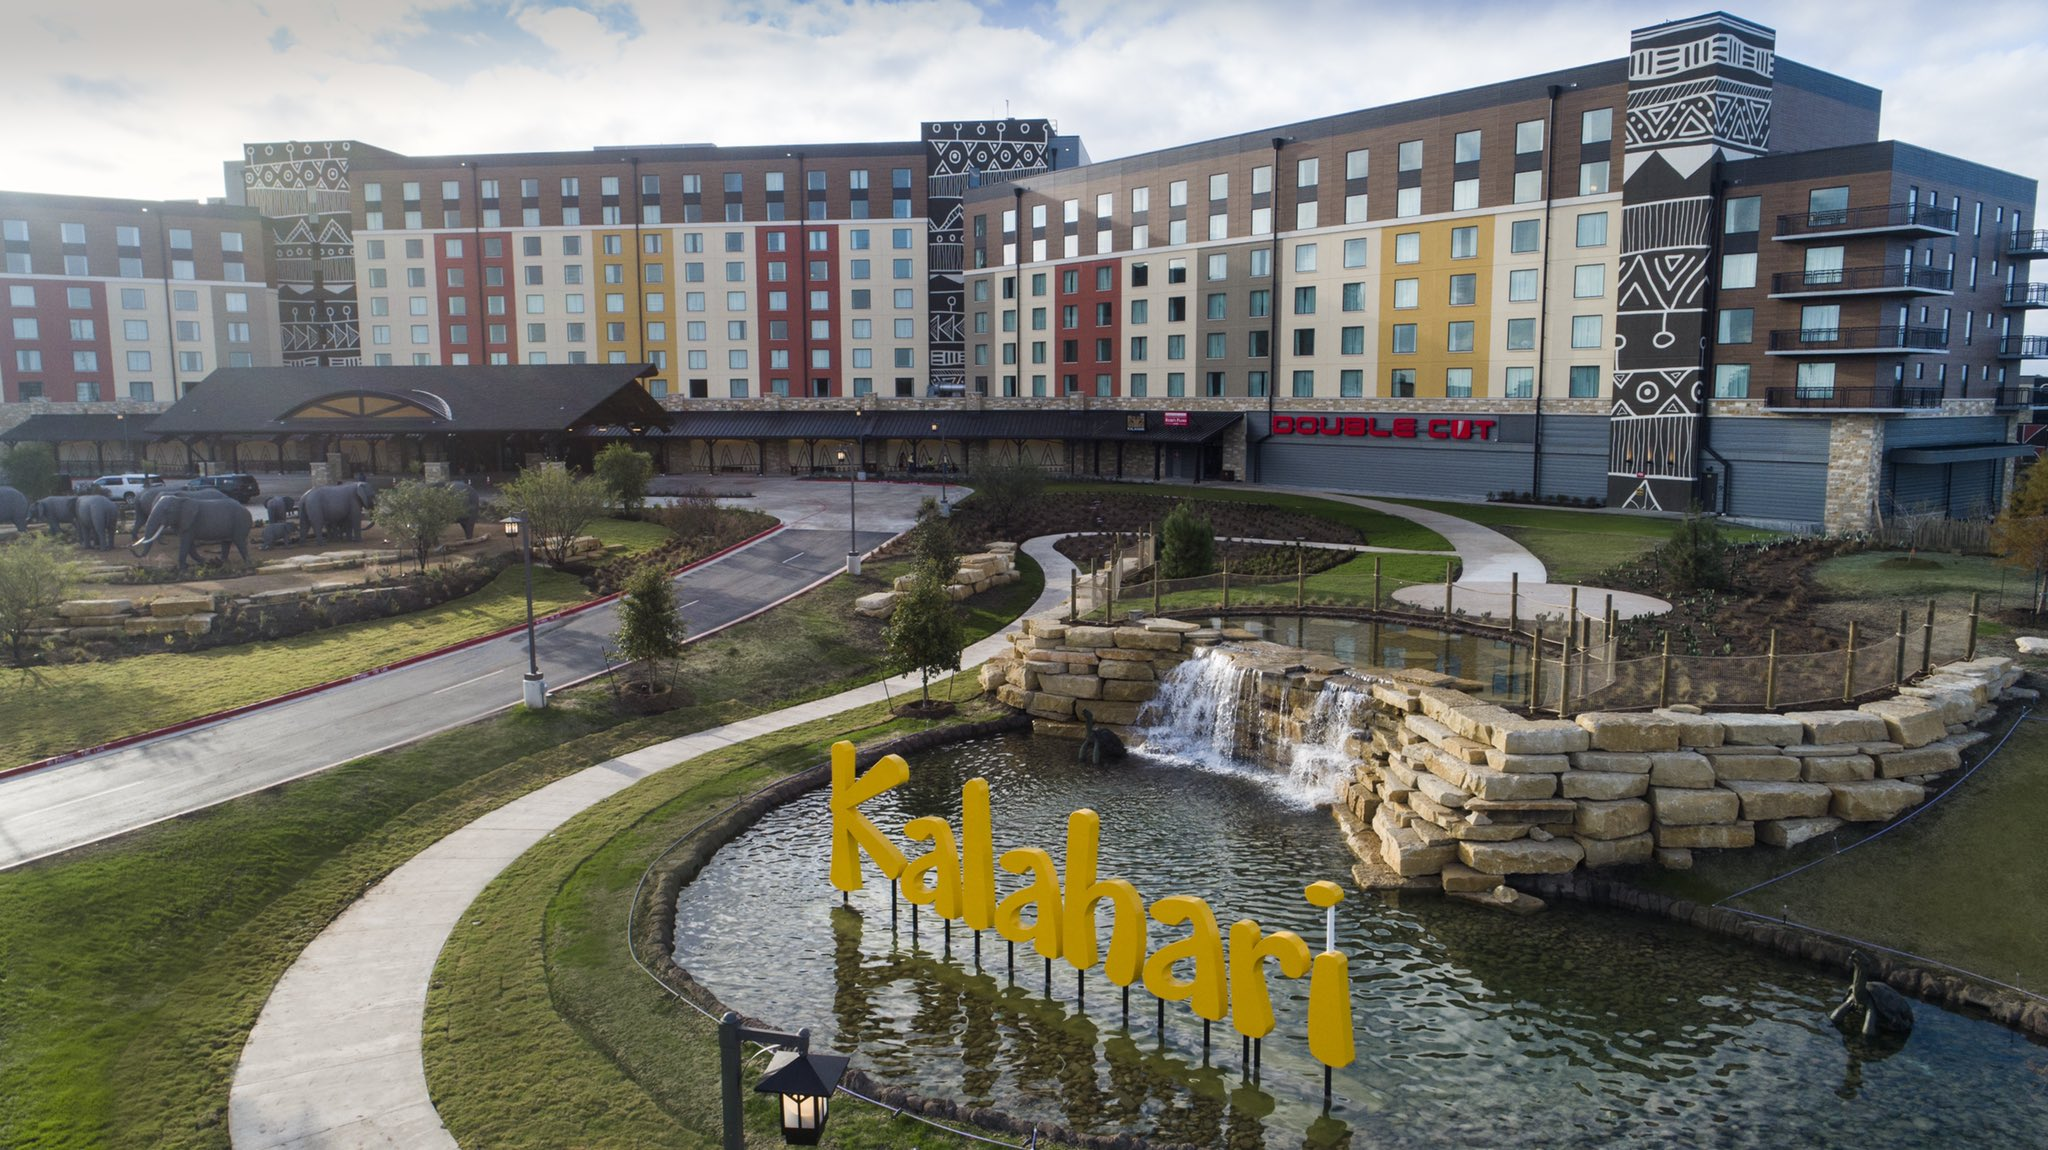 A digital rendering of the outside of the Kalahari Round Rock location, with a yellow sign and stripe-pattern painted buildings and statues of elephants